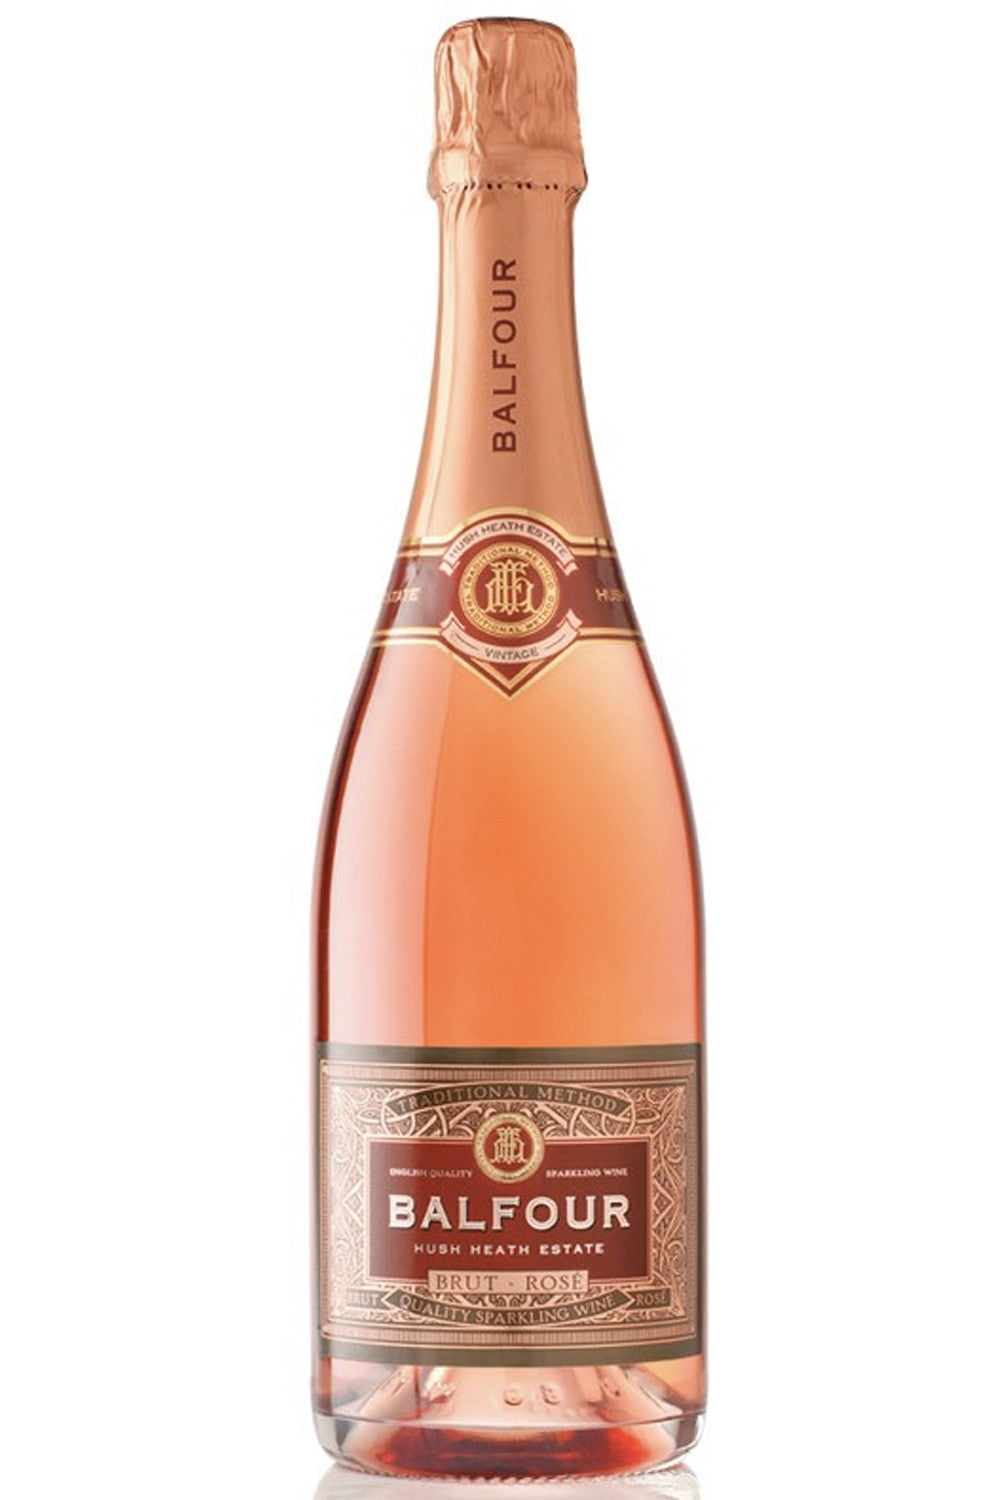 Hush Heath Balfour Brut Rosé 2013 - Hawkins Bros. Fine English Wines